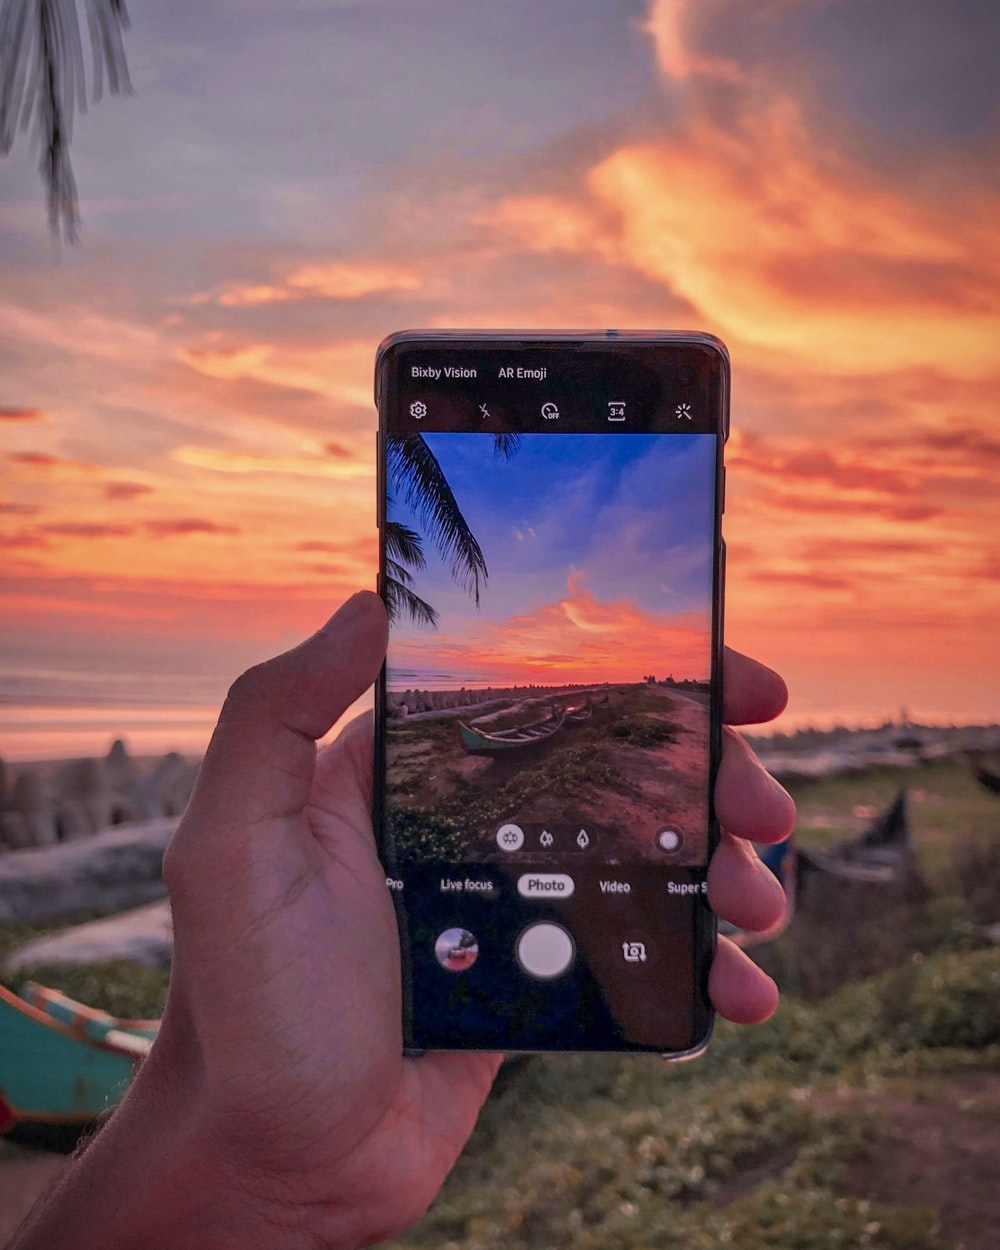 person capturing sunset